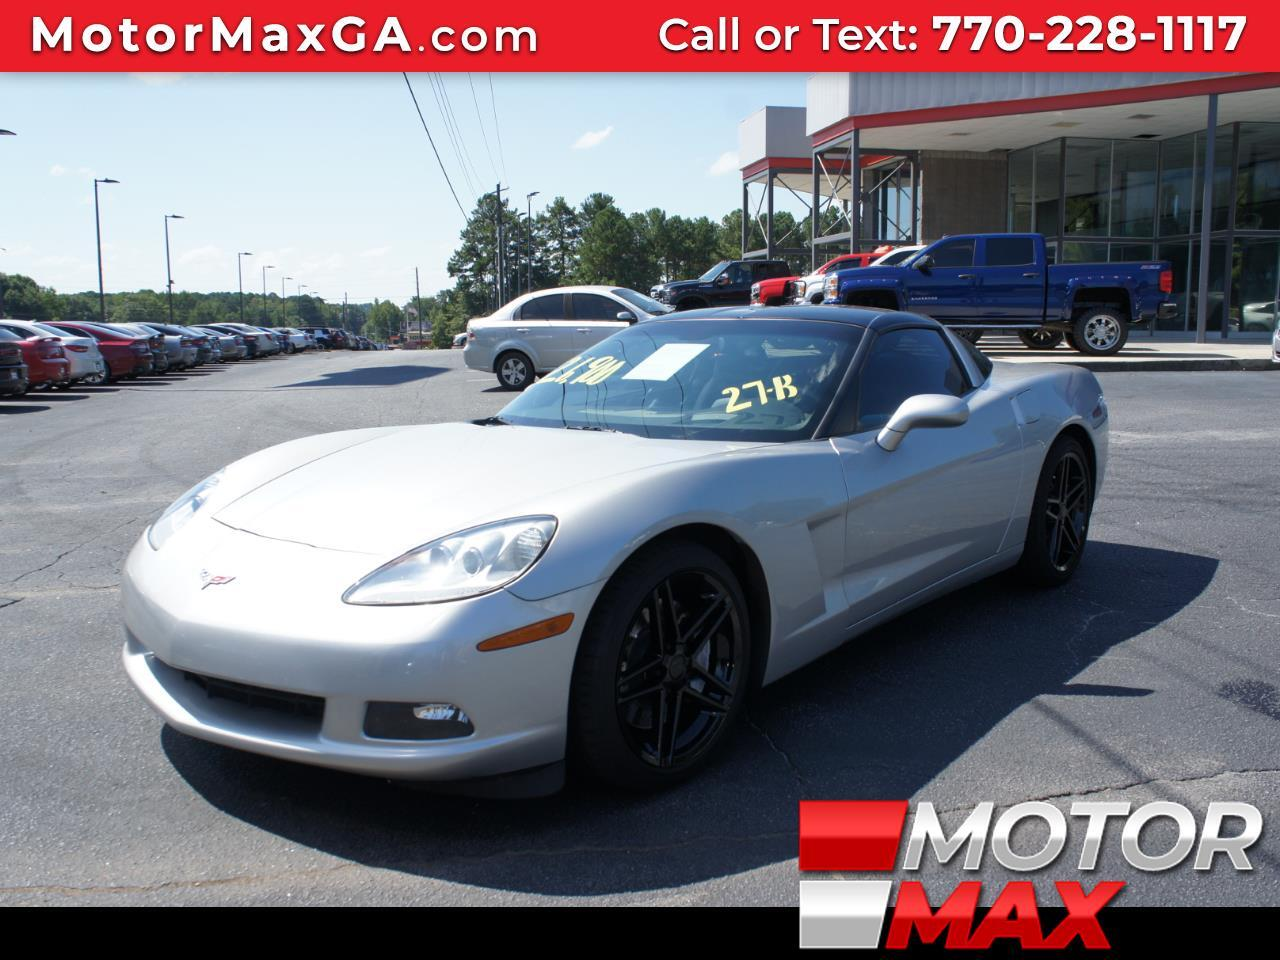 2007 Chevrolet Corvette 2 Door Coupe Super Charger 6 Speed Manual